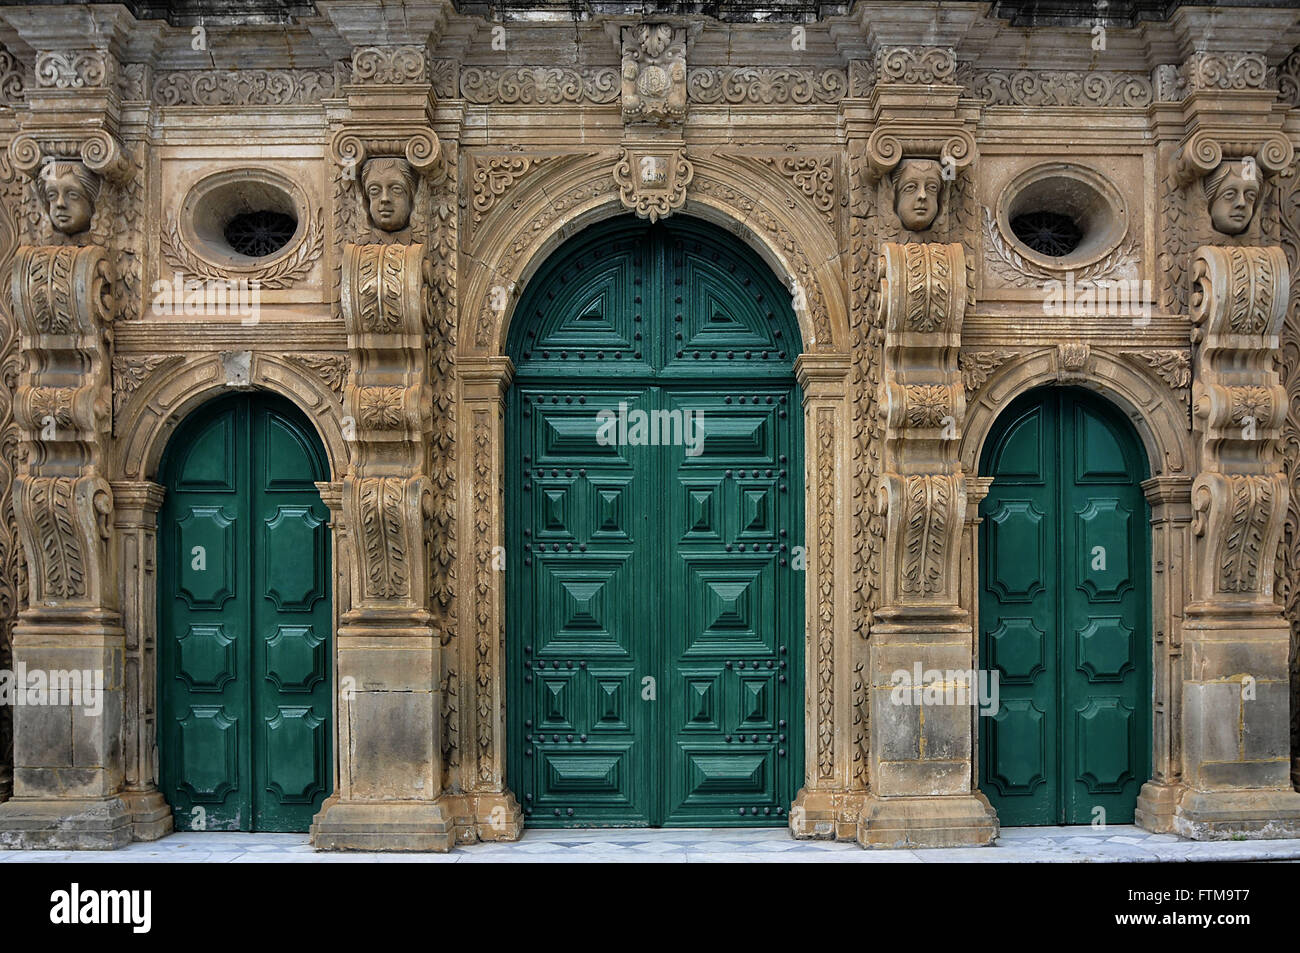 Church of the Third Order of St. Francis - Construction 1703 - Centro Historico - Stock Image